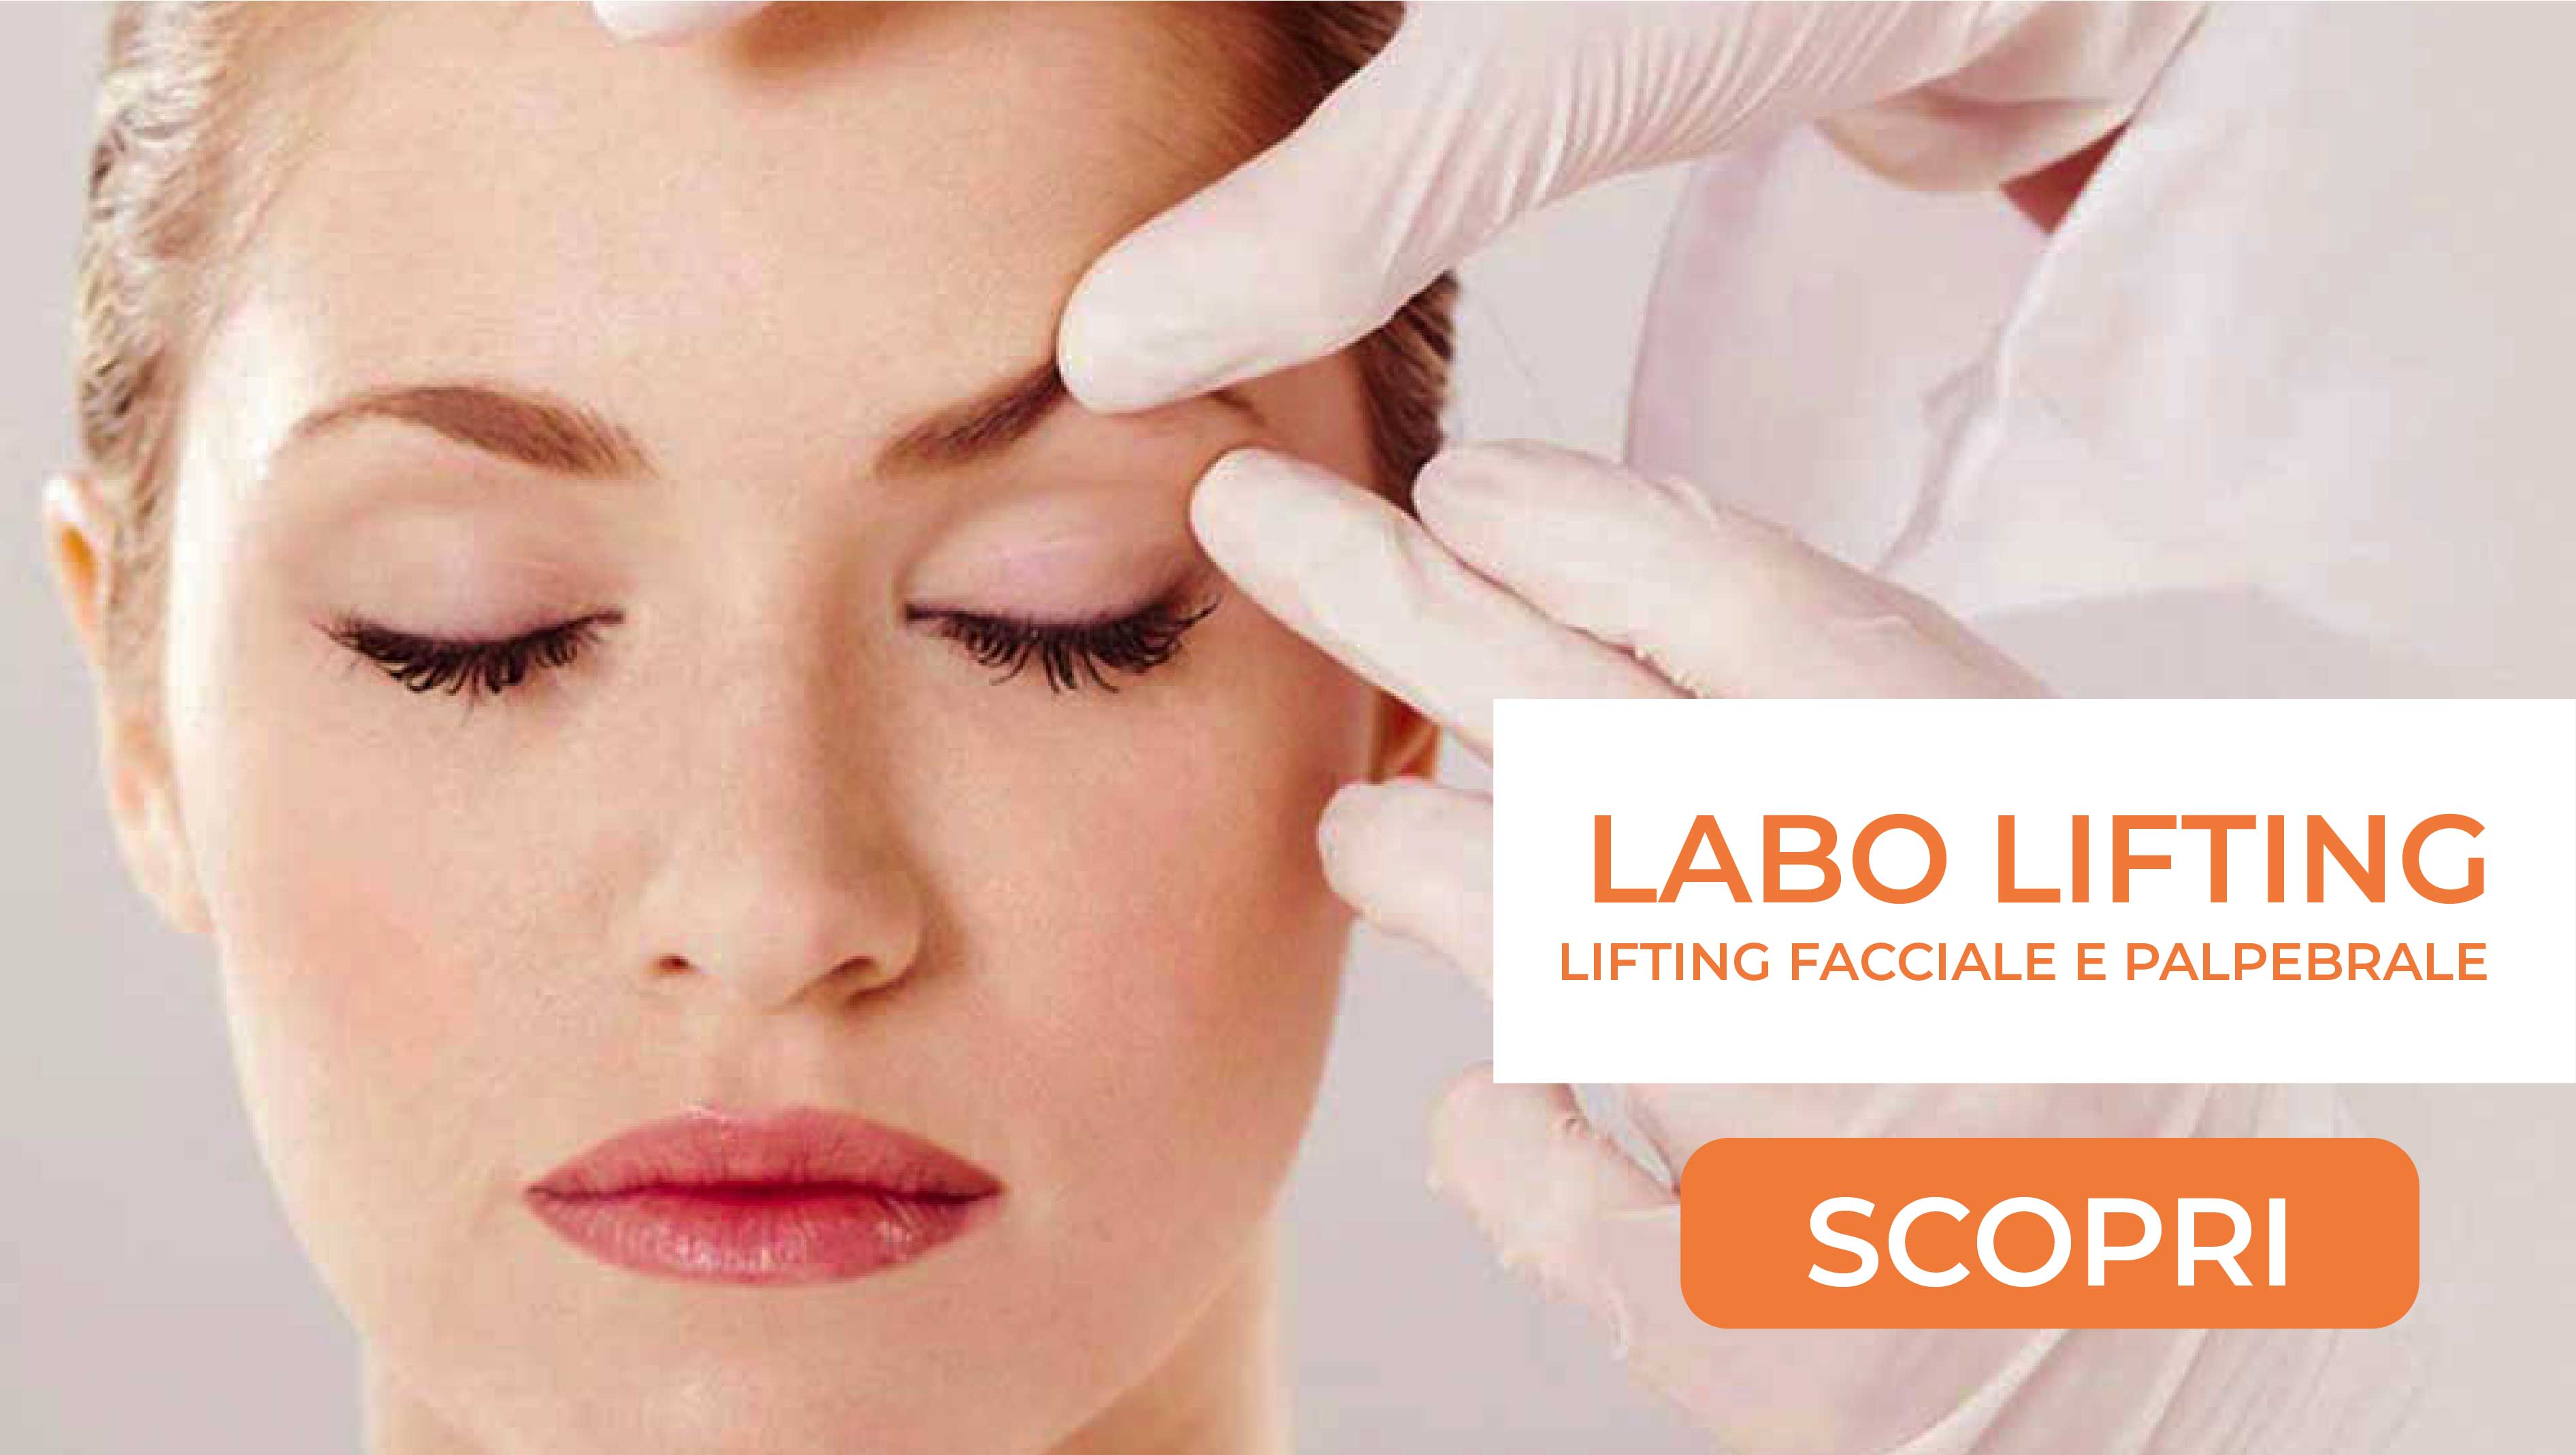 https://www.bravafarmacia.it/233-labo-lifting